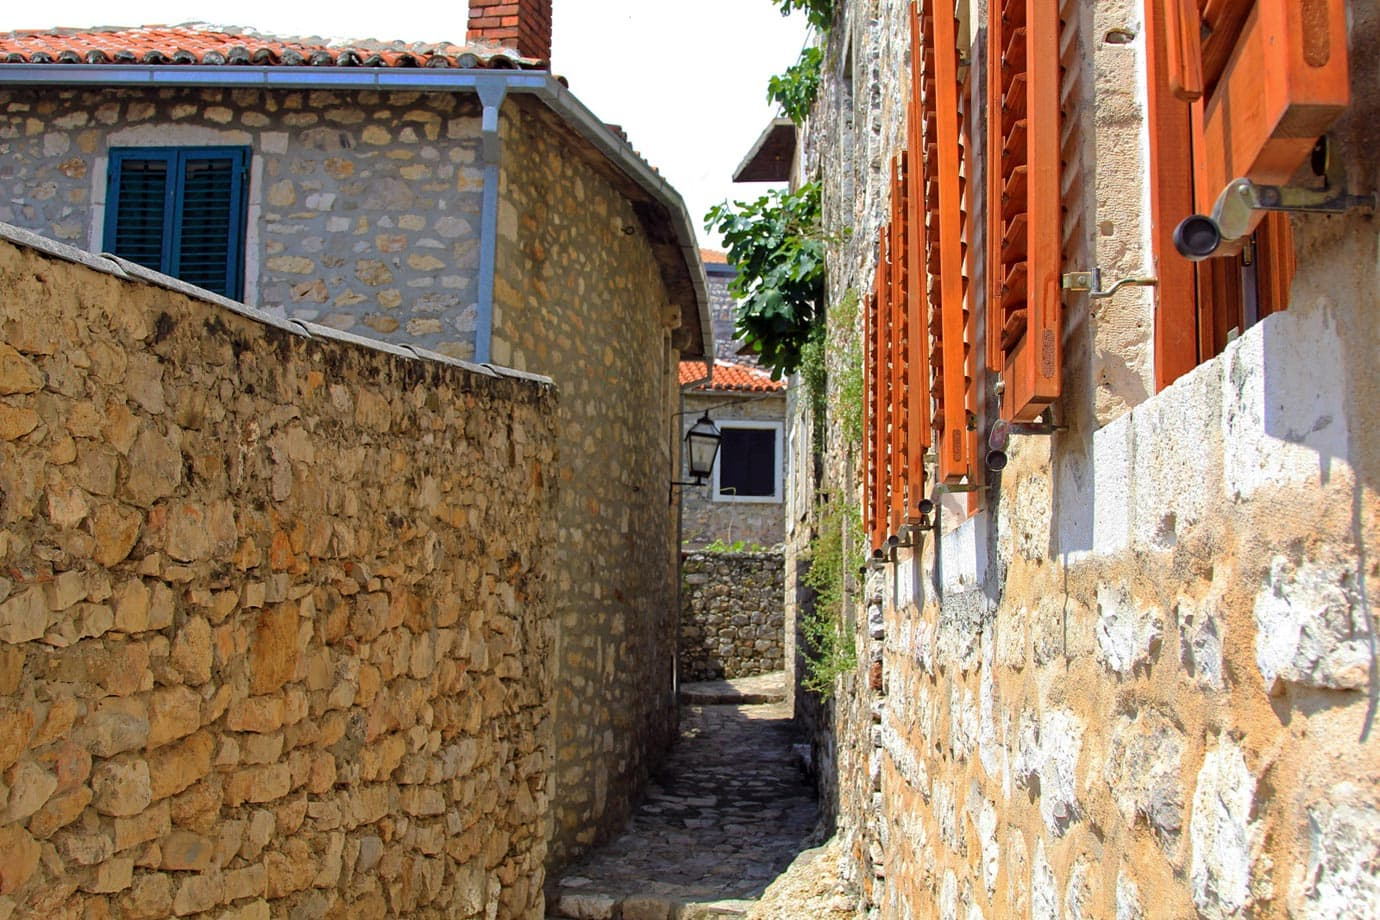 Like most towns along the coast of Montenegro, there is an Old Town with cobbled stones and small side streets